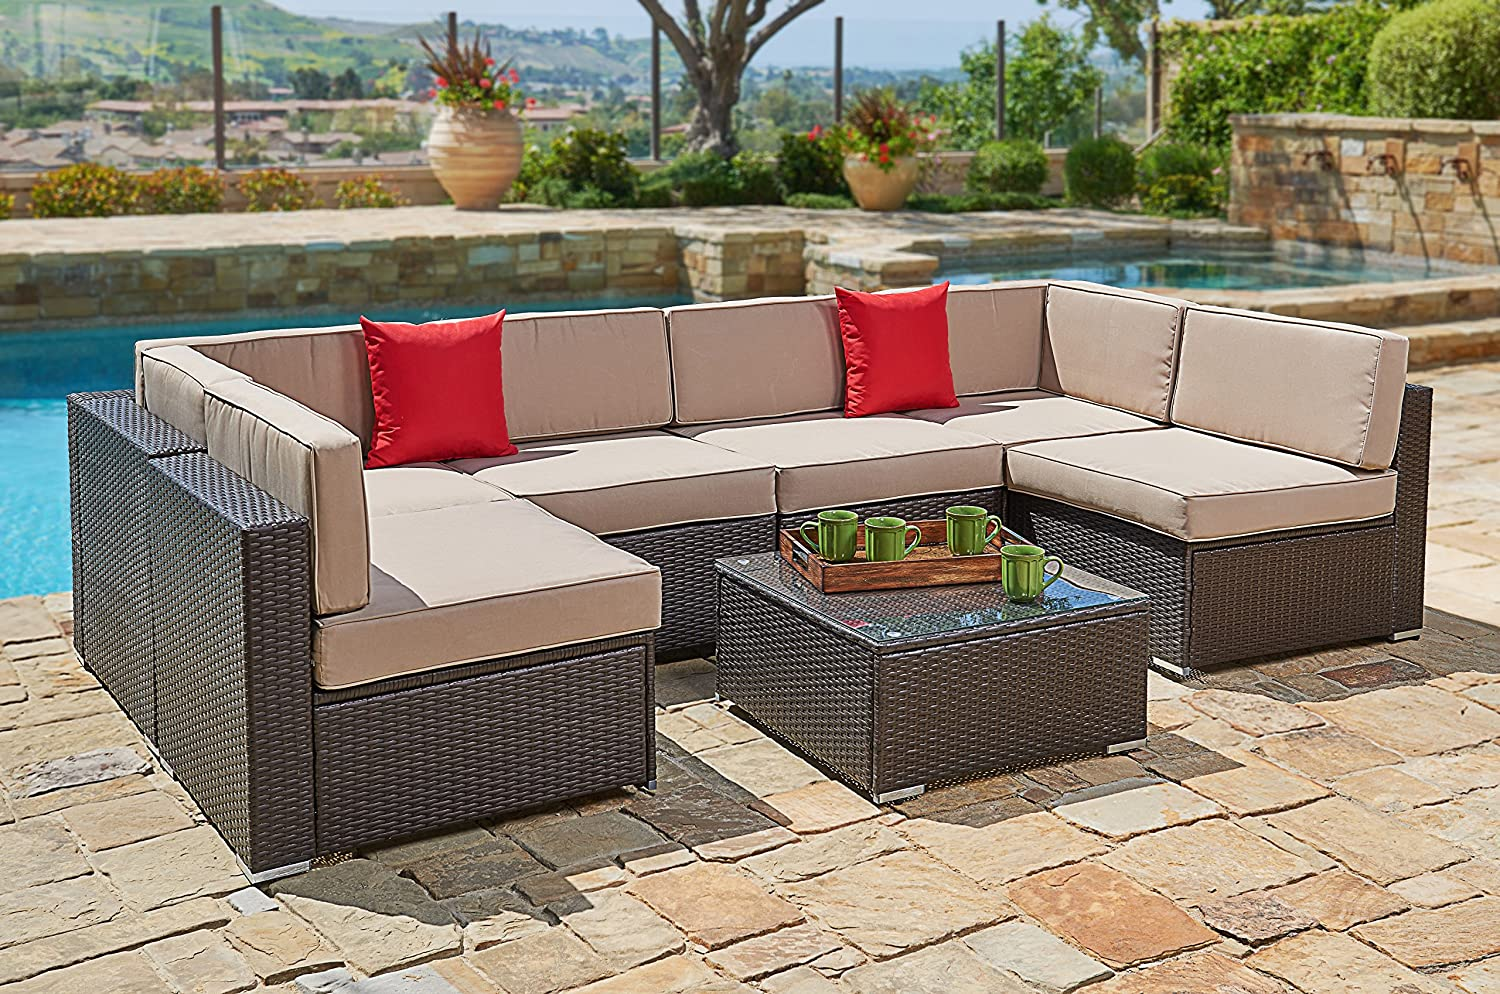 Suncrown Outdoor Furniture Sectional Sofa Set (7-Piece Set) All-Weather Brown Wicker with Brown